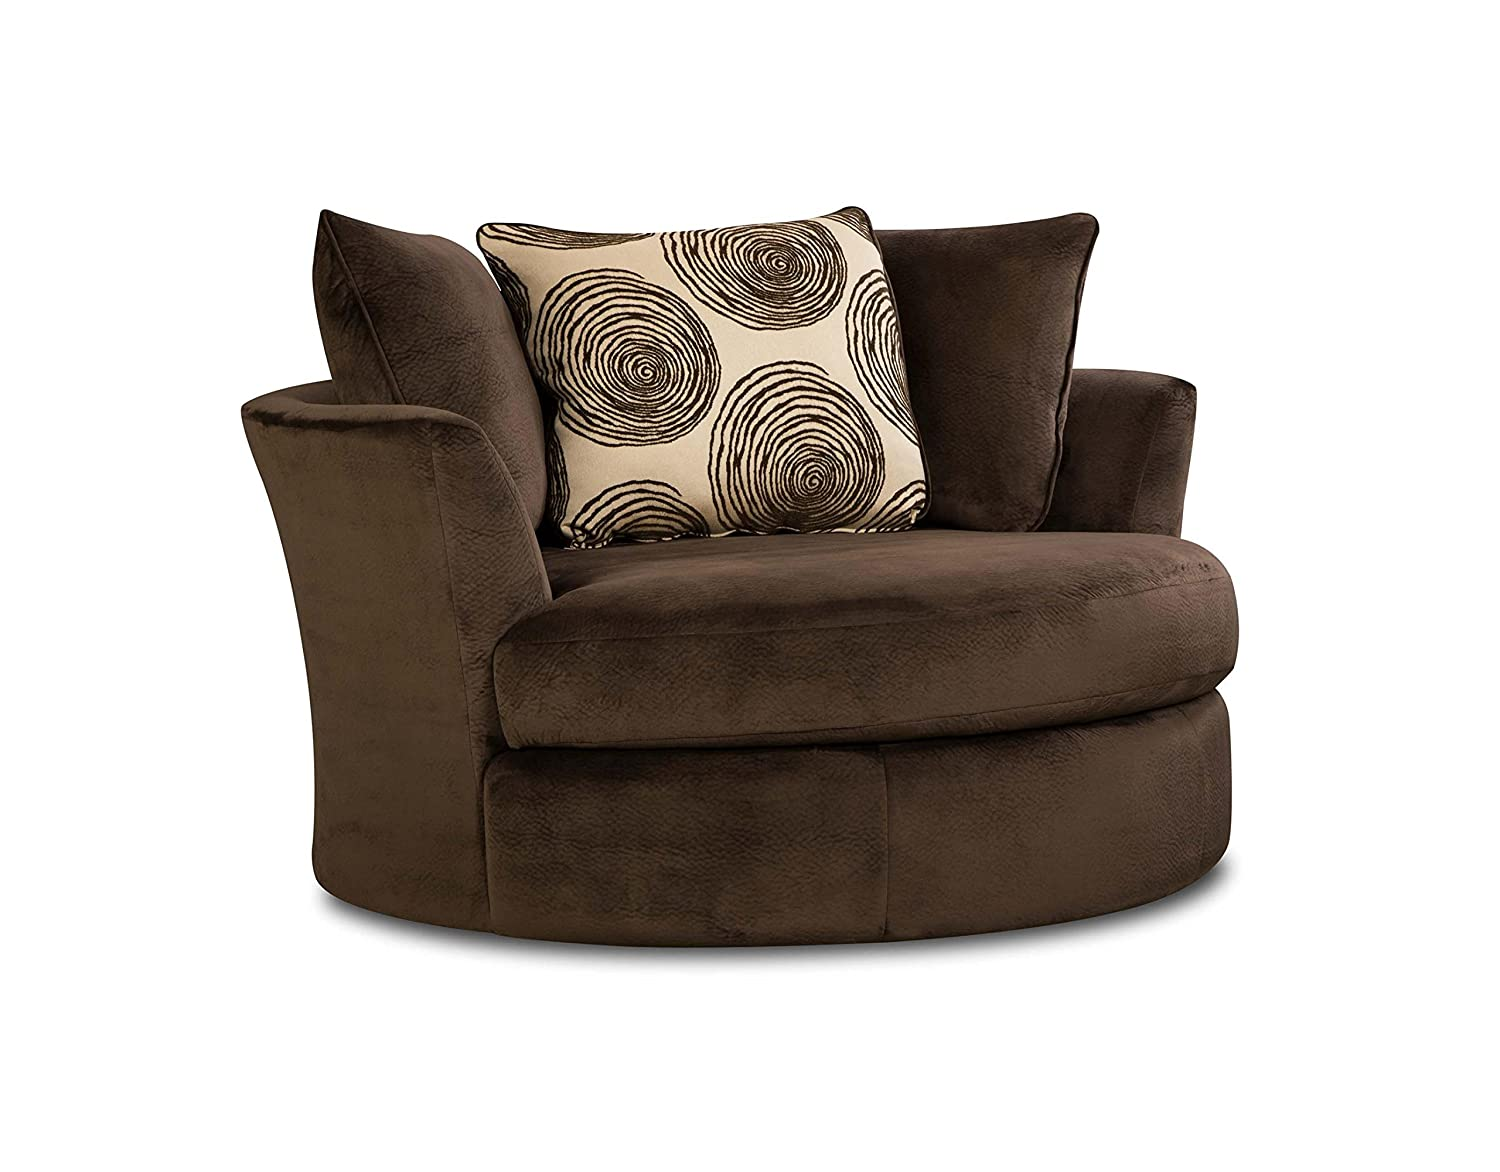 living room swivel chairs. Amazon com  Chelsea Home Furniture Rayna Swivel Chair Groovy Smoke Big Swirl Kitchen Dining